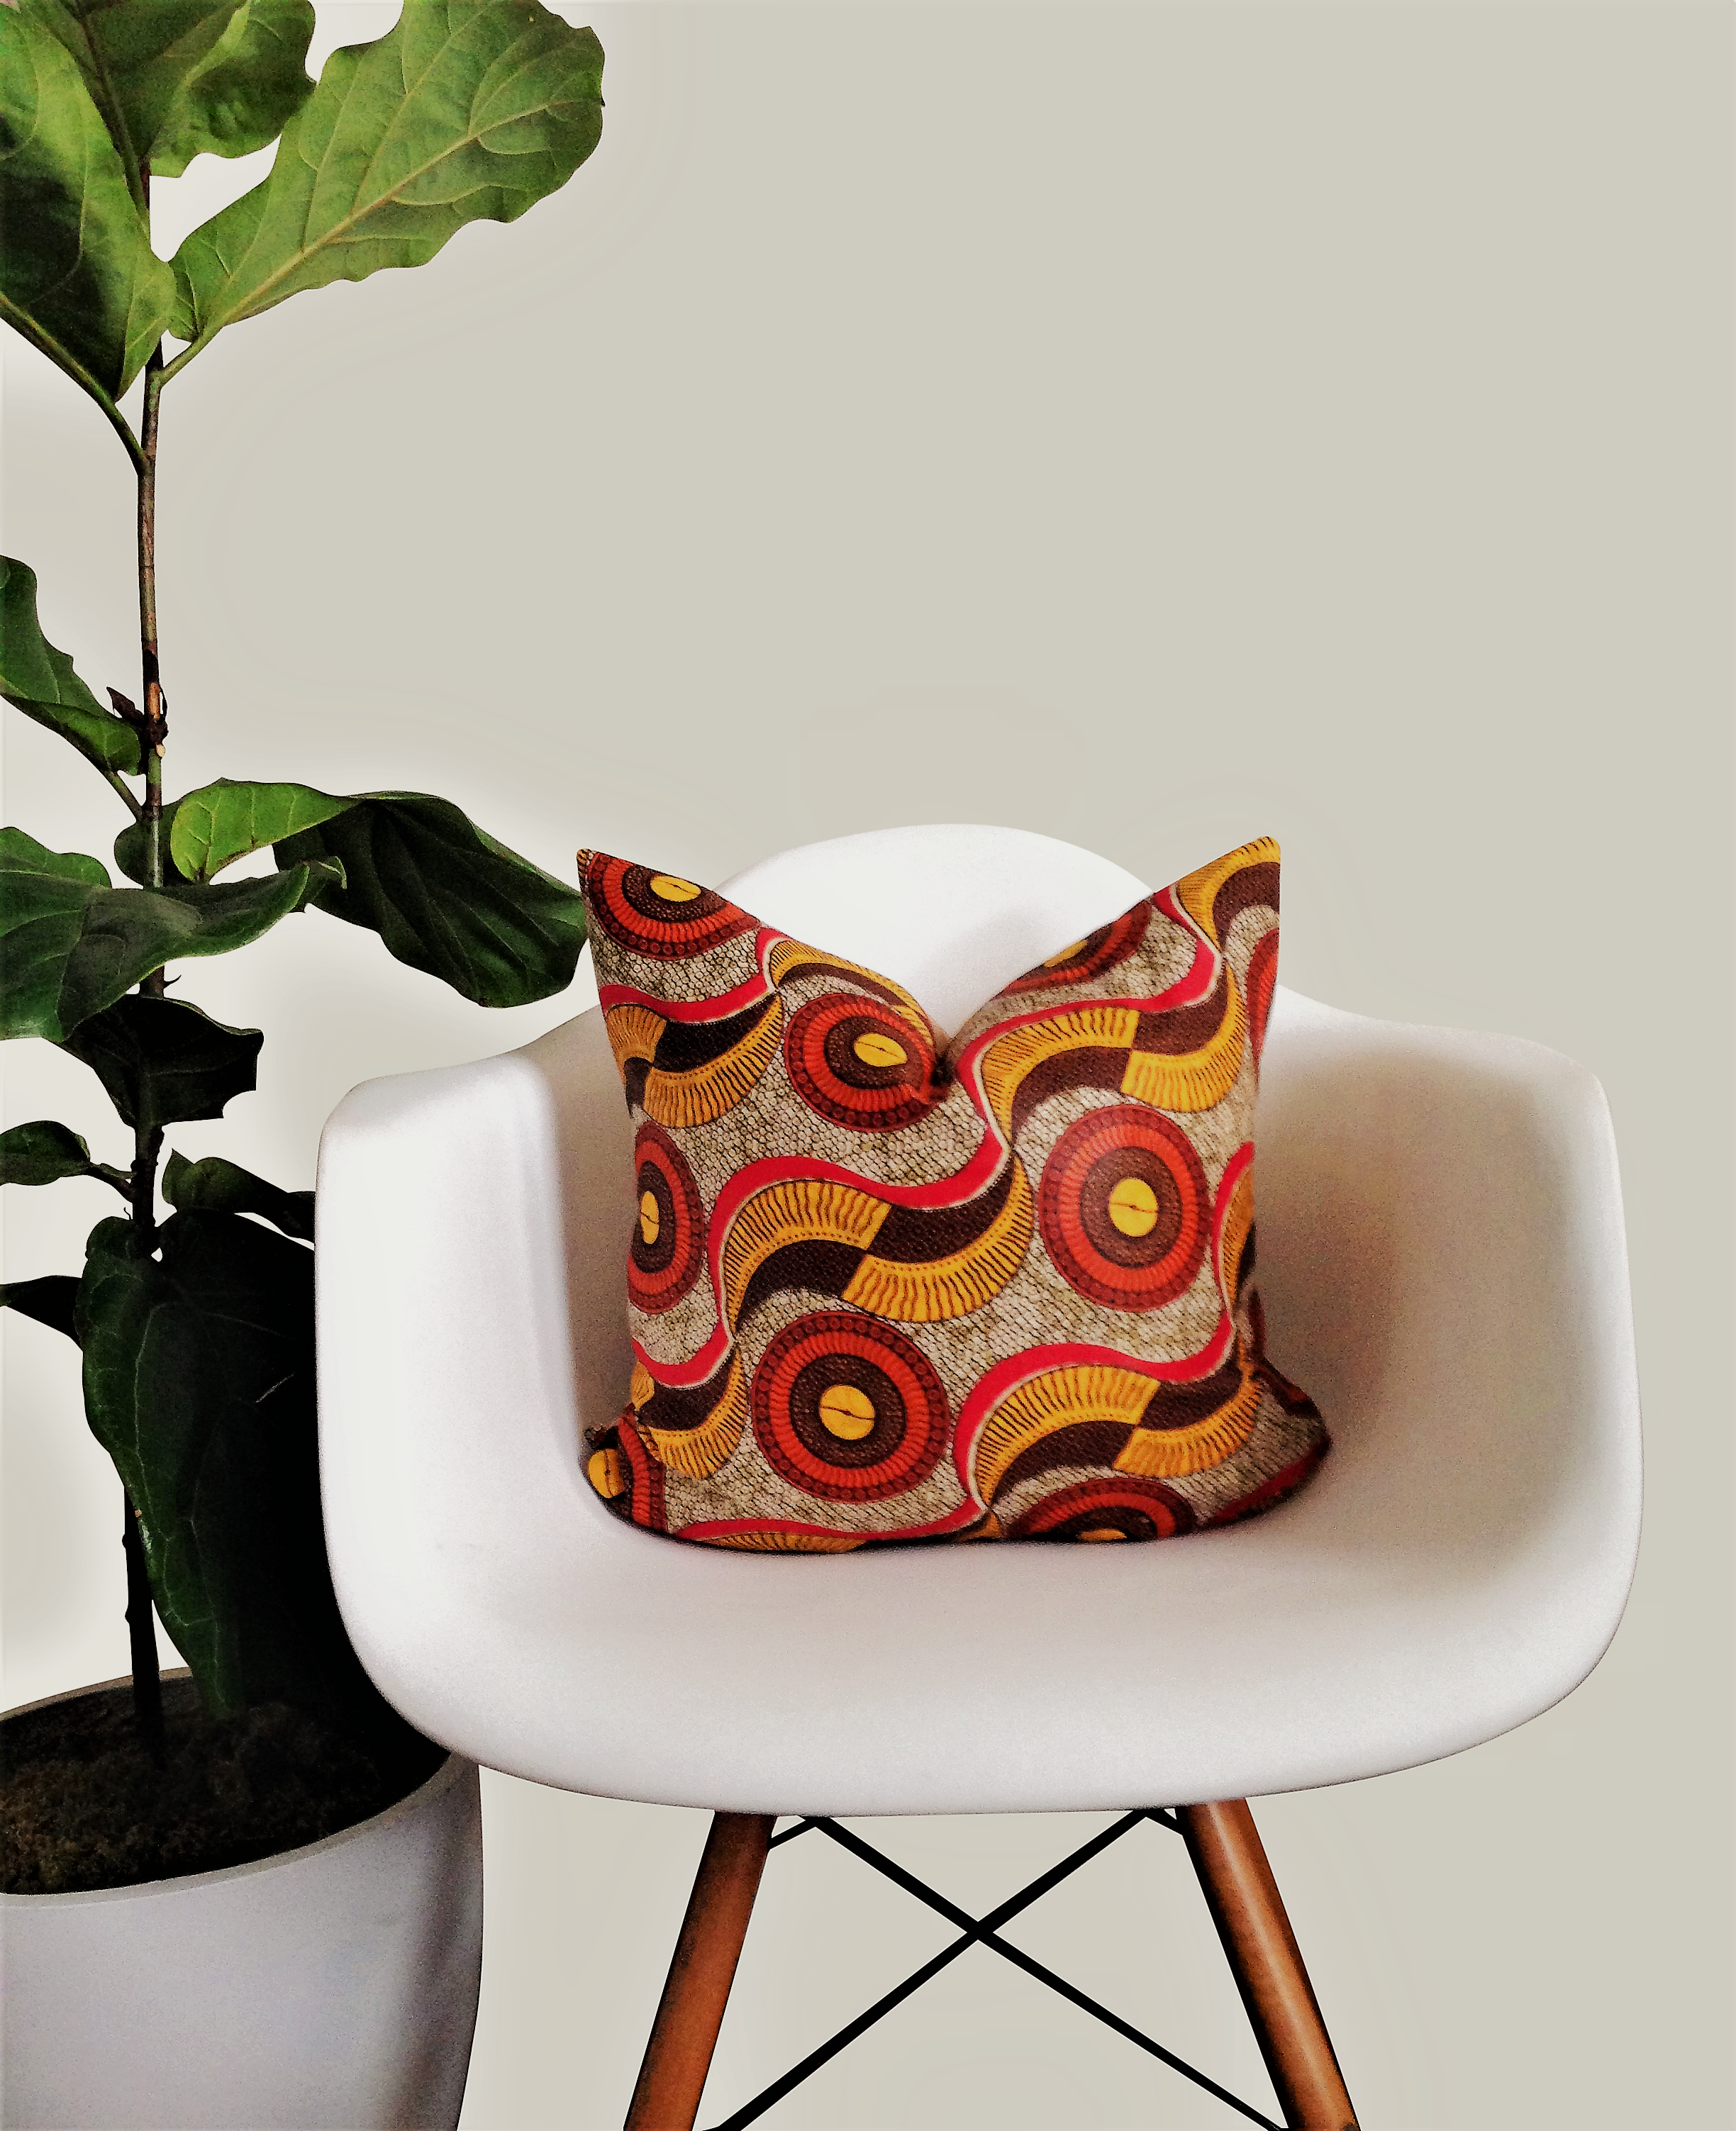 New arrival harvest african wax print throw pillow this pillow in warm autumnal hues will